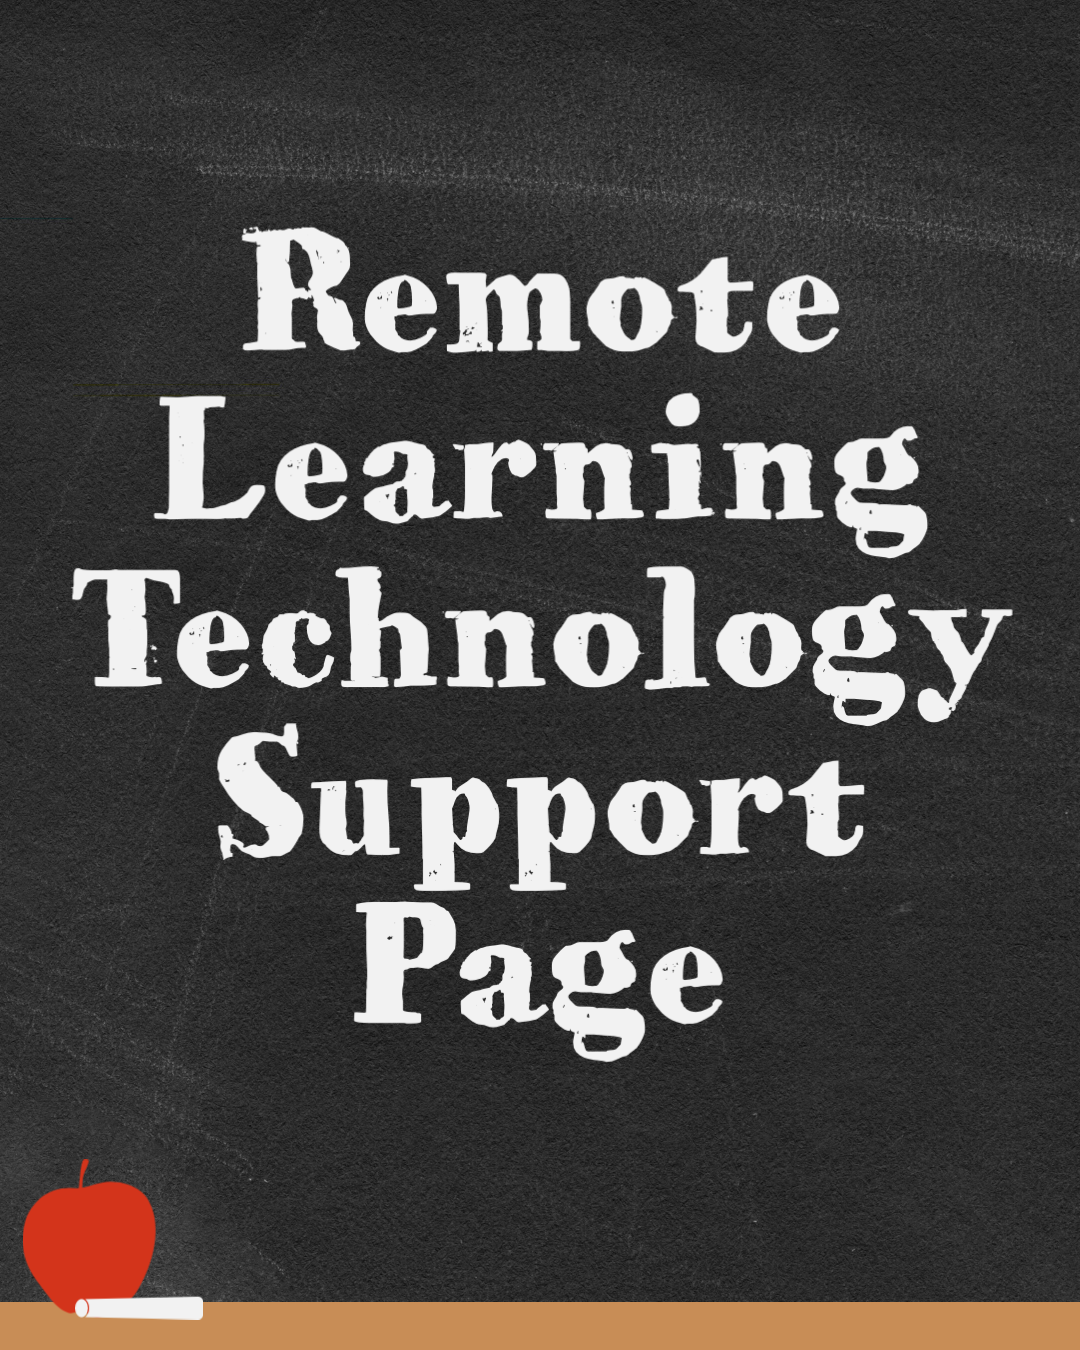 Remote learning technology support page